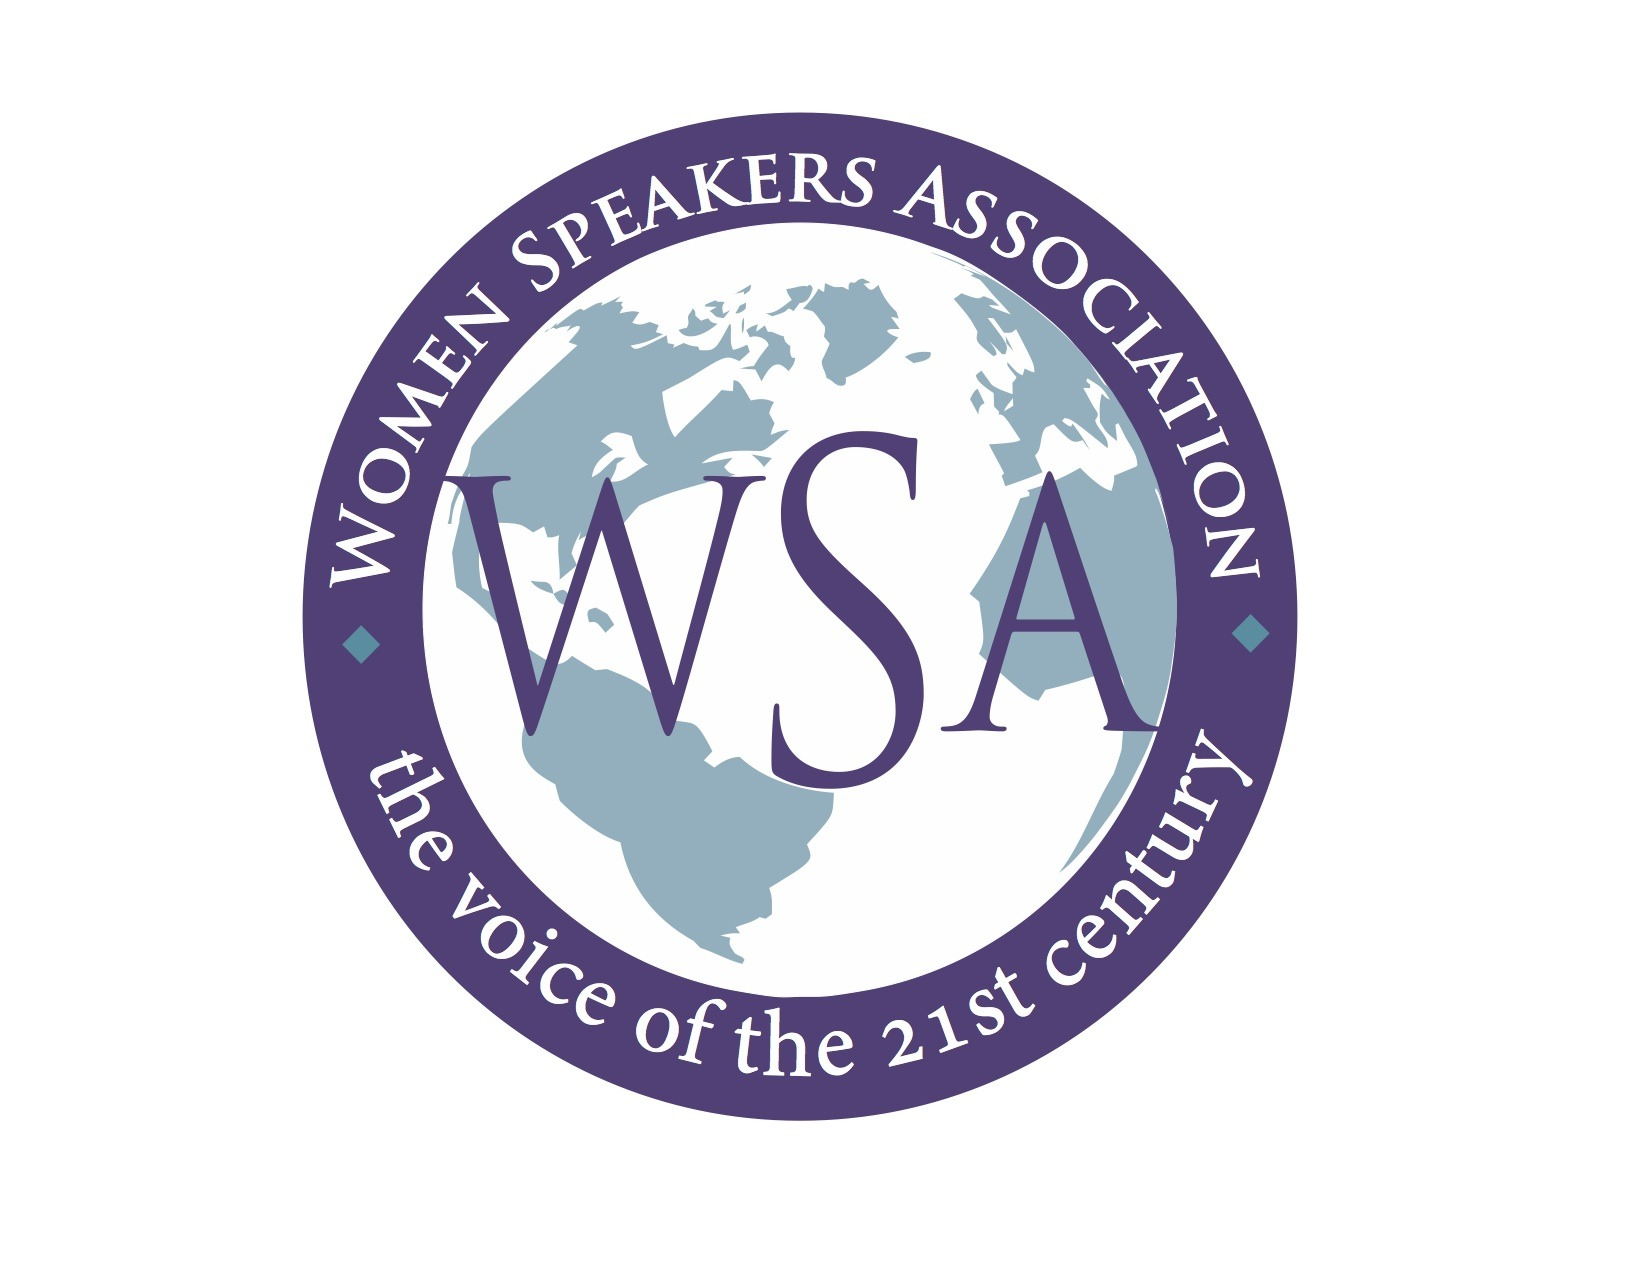 Women Speakers Association: The Voice of the 21st Century